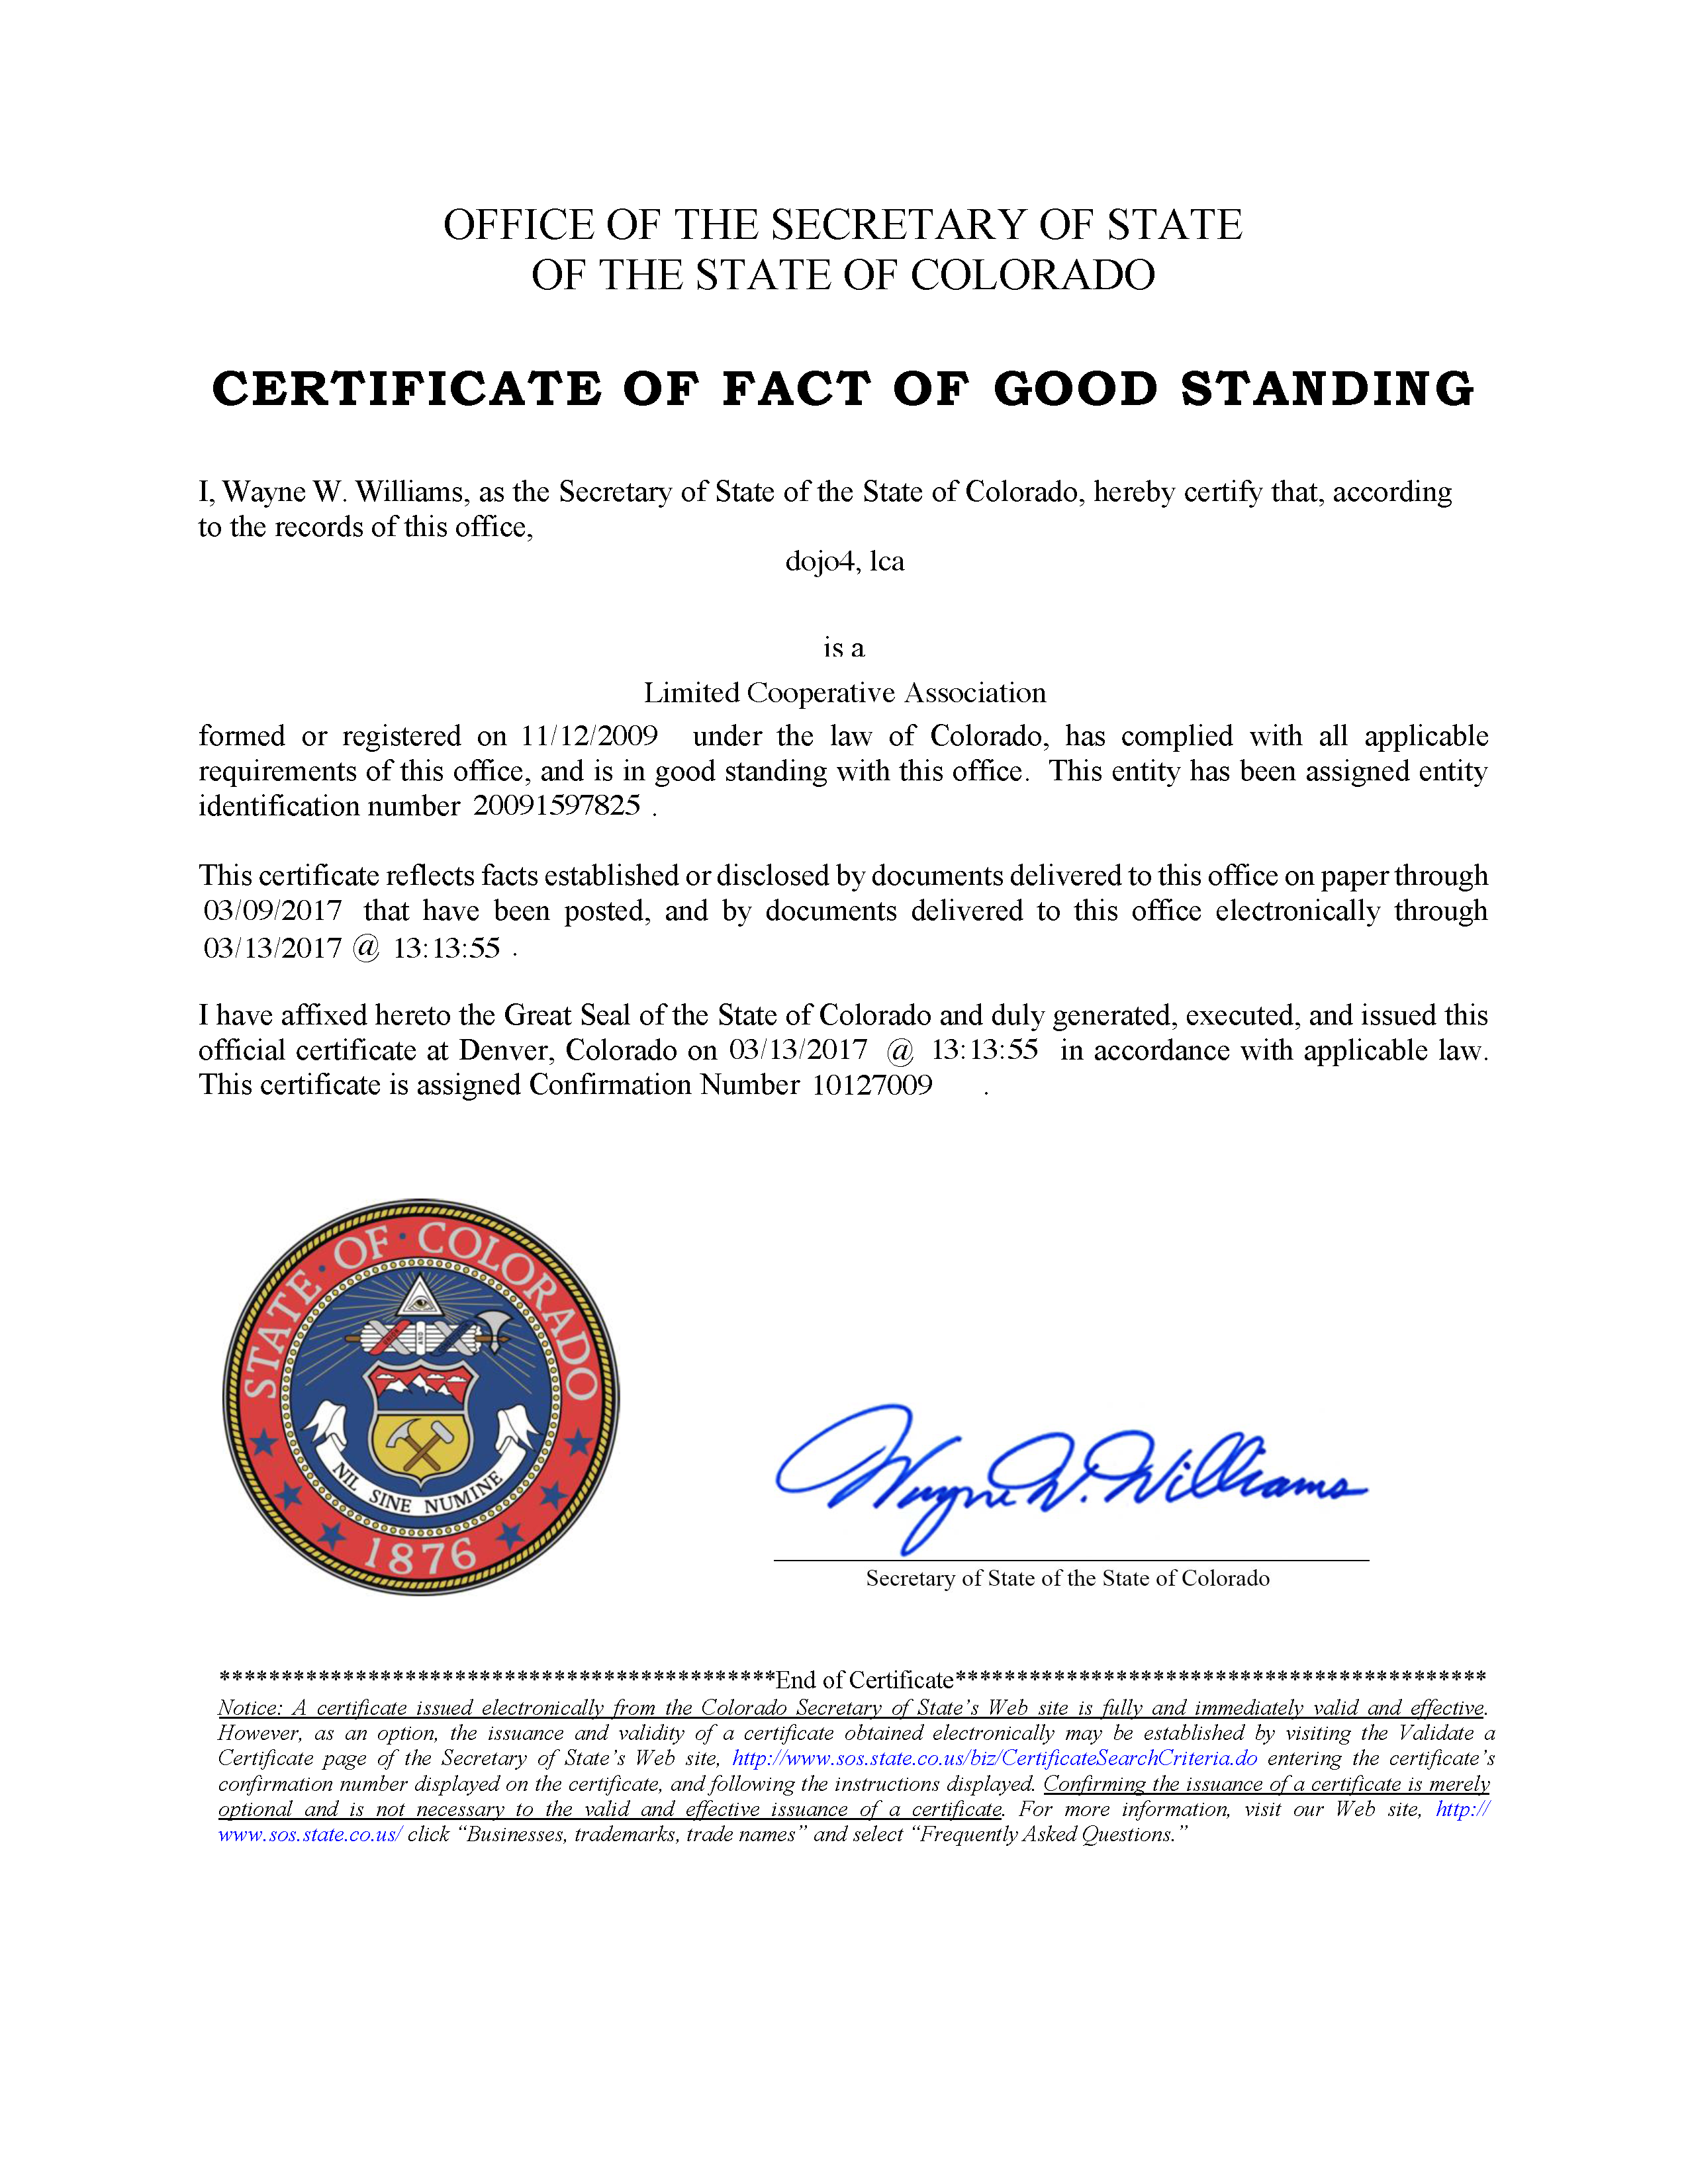 Cert of Good Standing_13MAR17.png